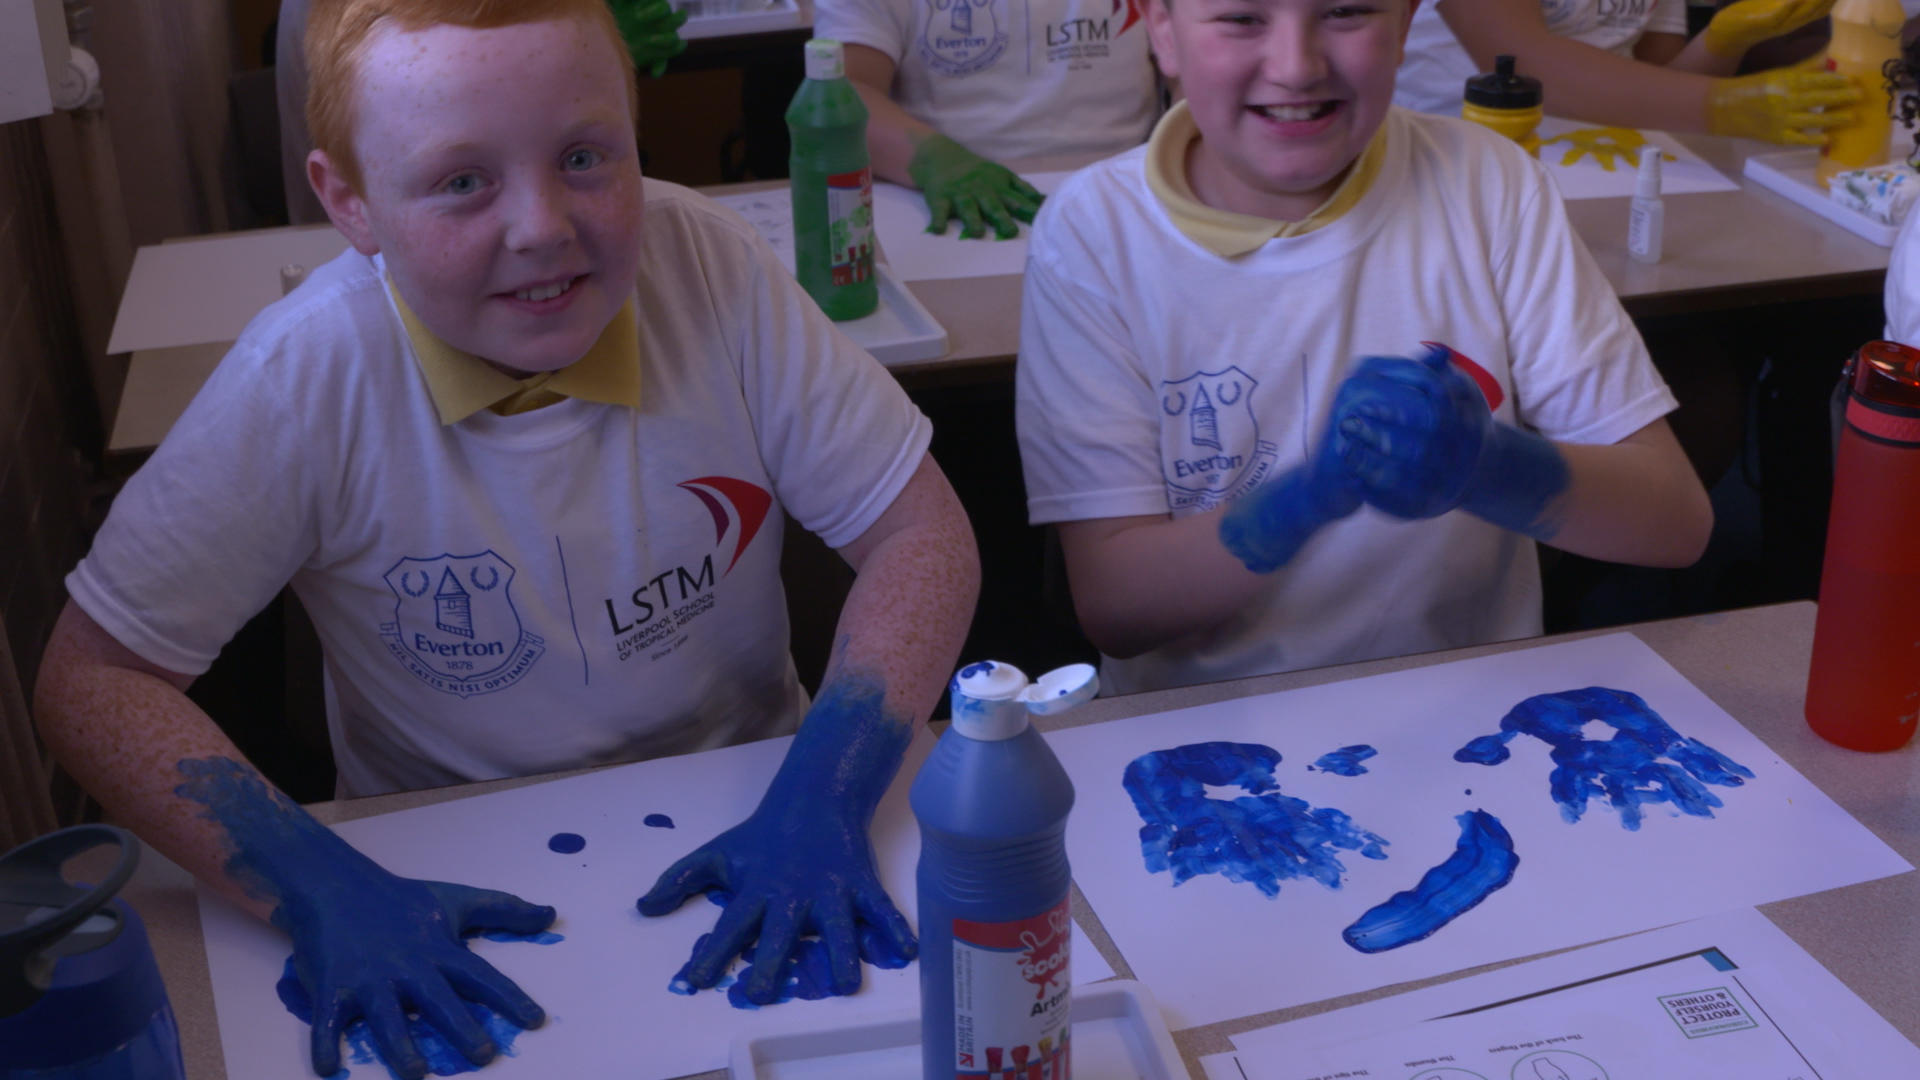 Wavertree Church of England pupils washing hands activity